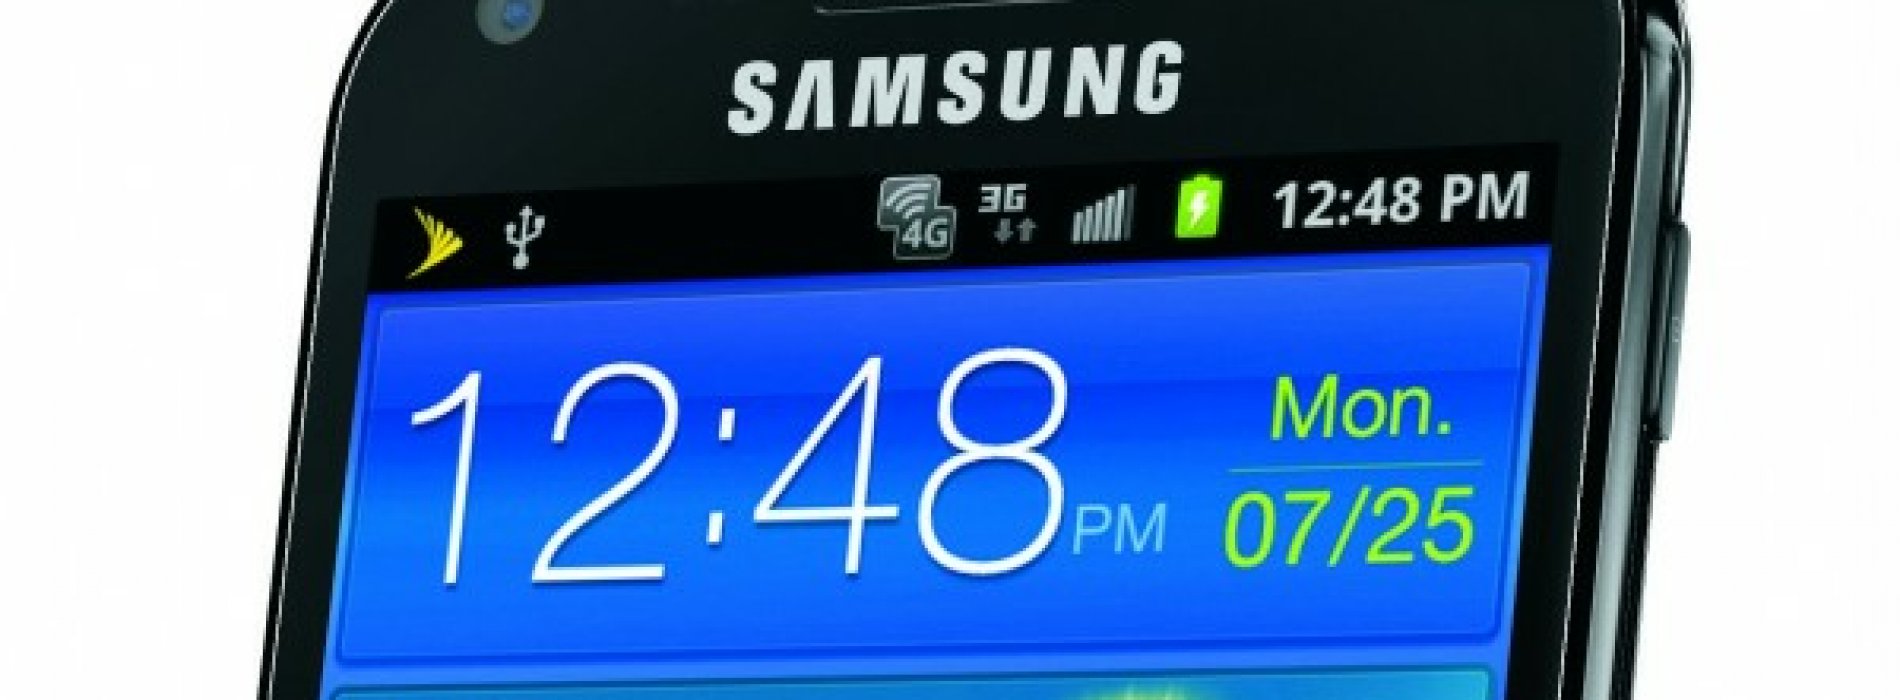 Galaxy Note III shows up at Samsung's website, real or not?